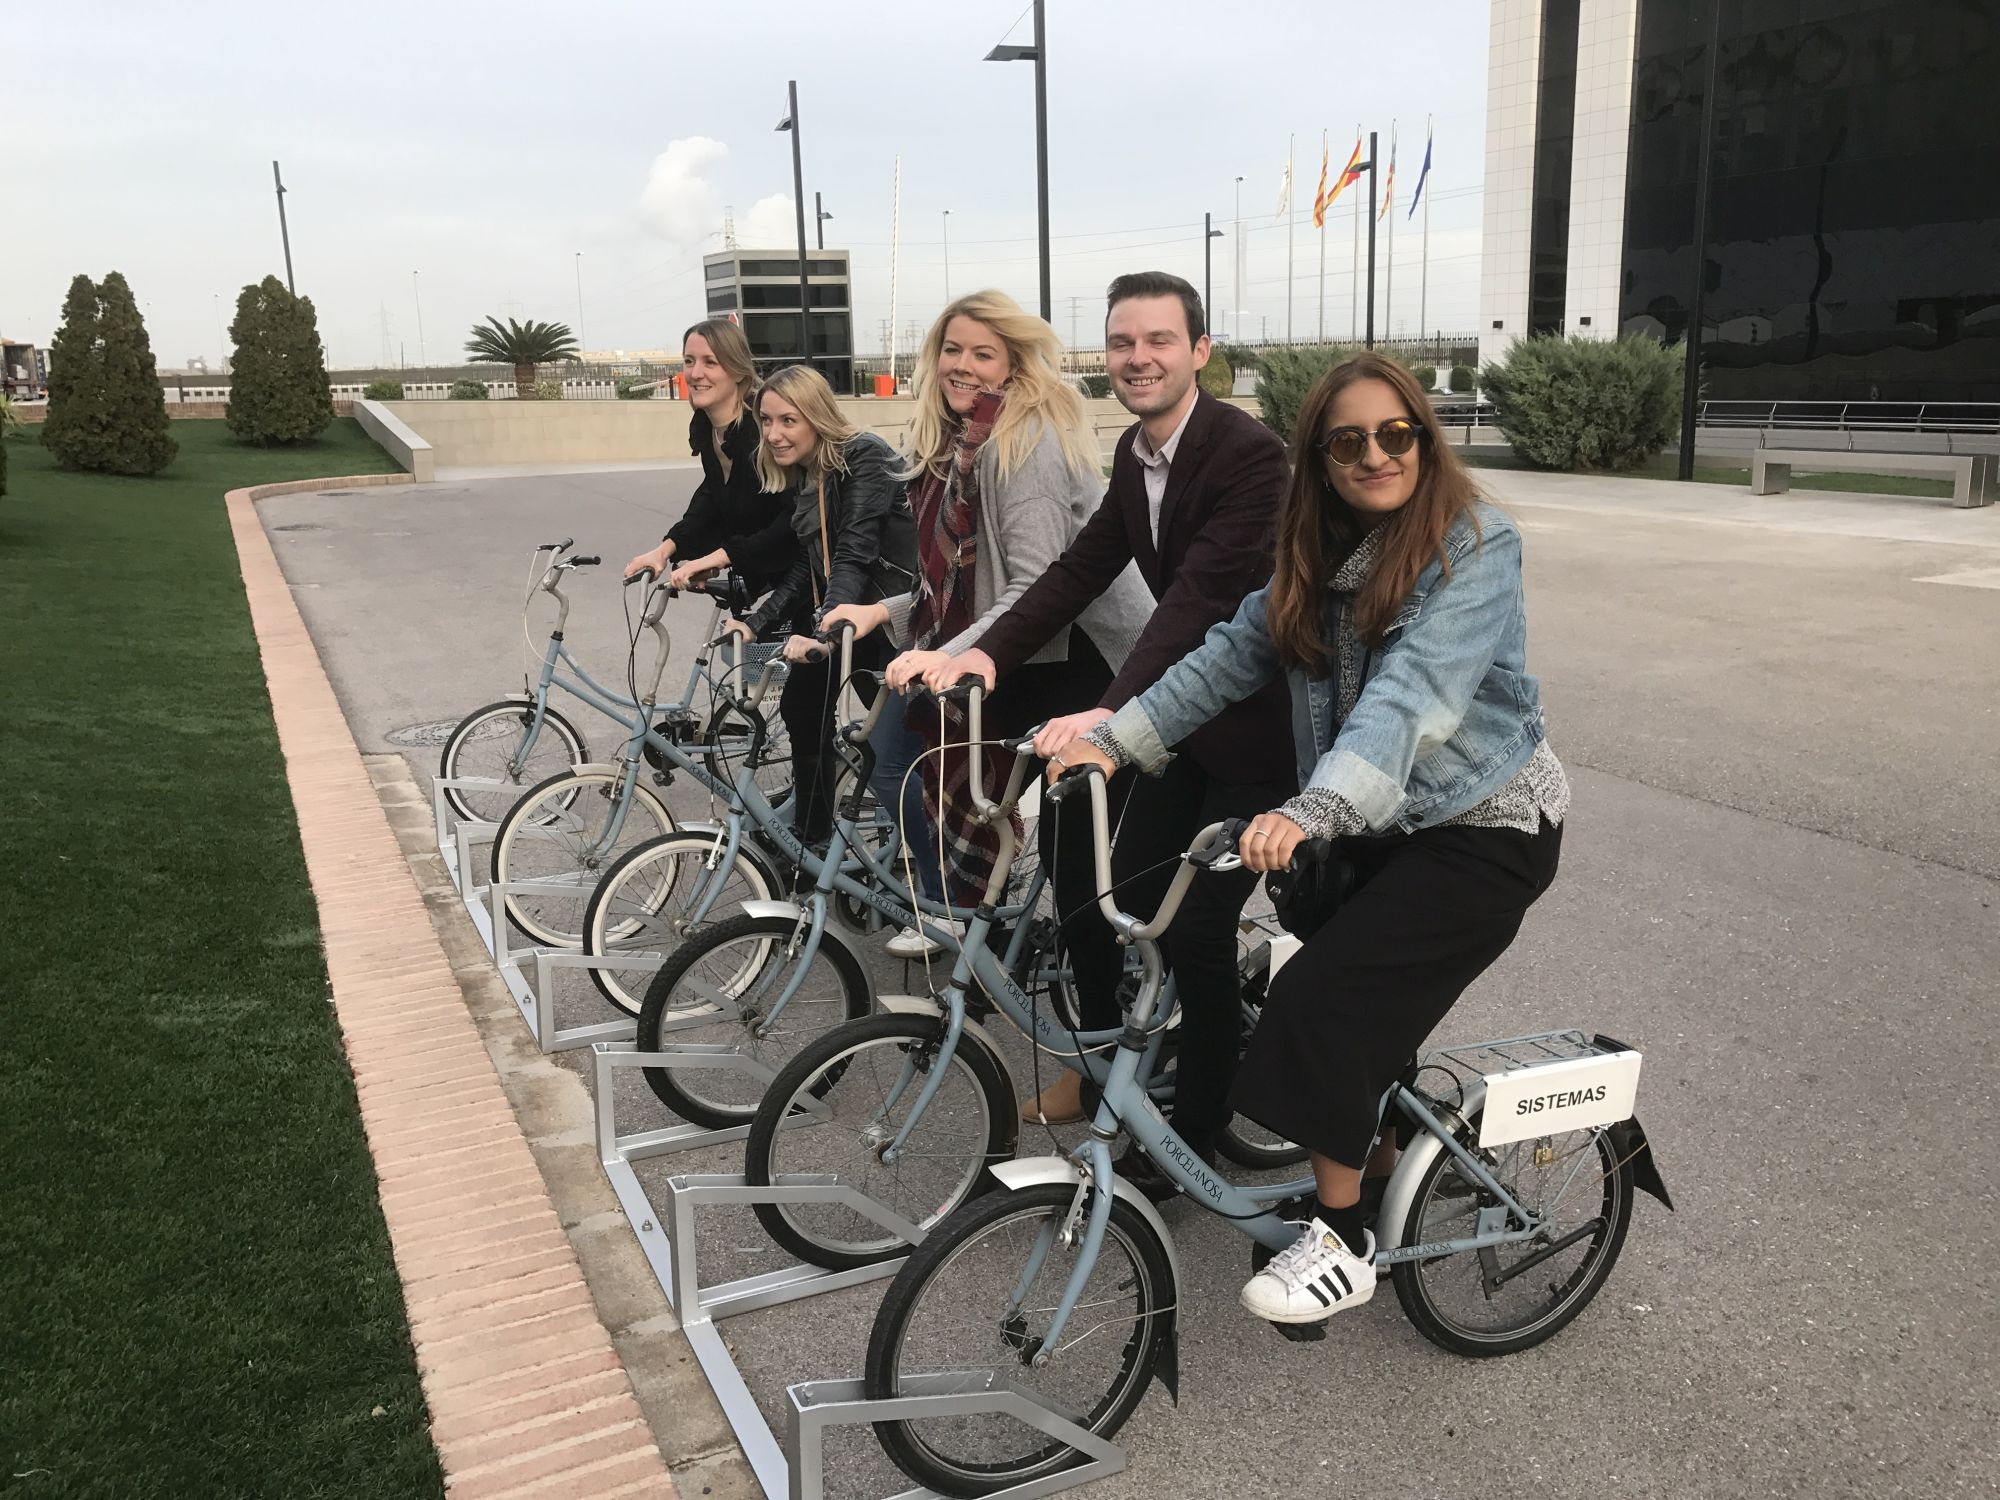 Porcelanosa-factory-bikes-with-fellow-blogger-friends